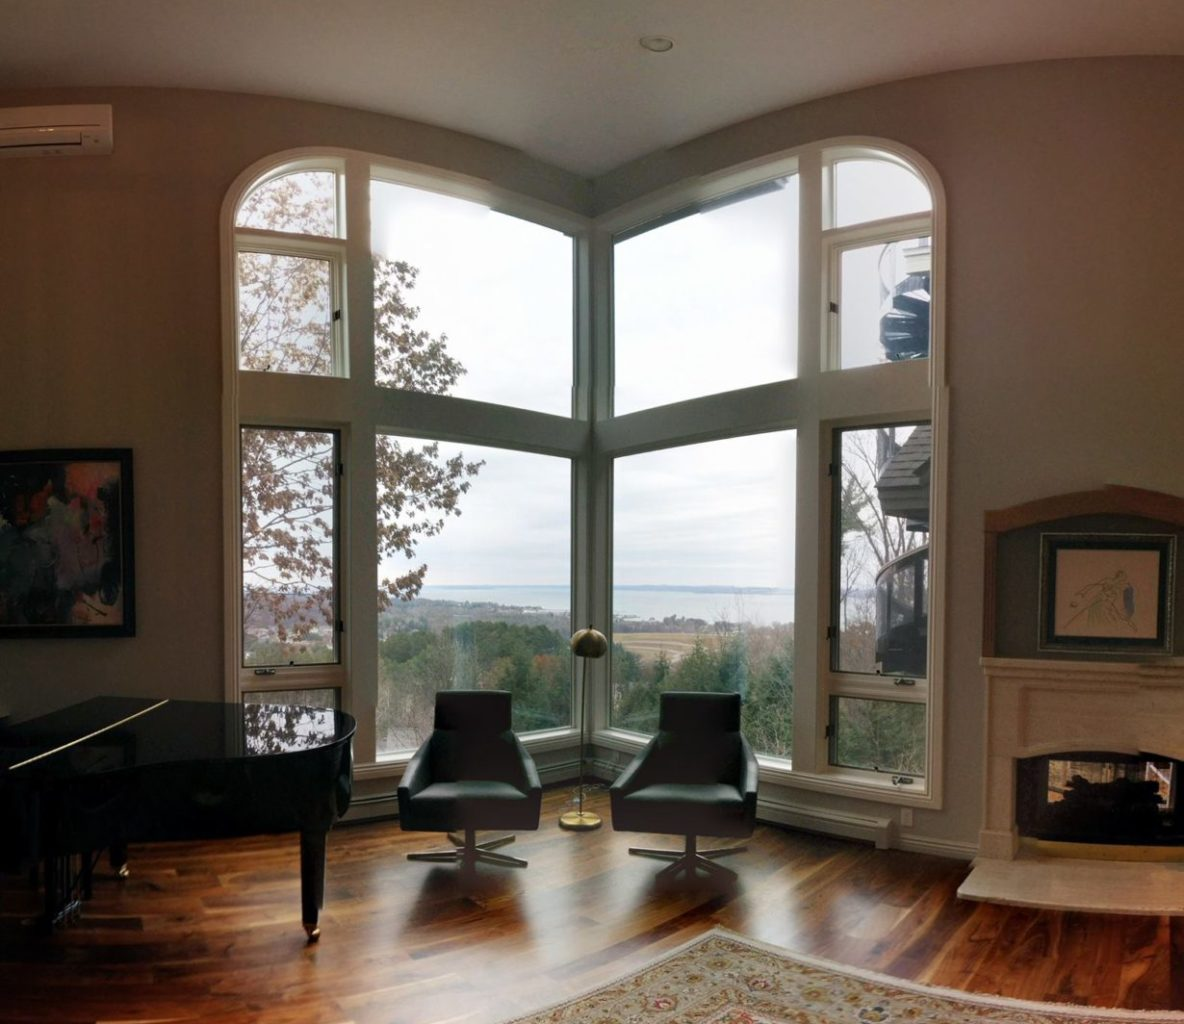 Vista Spectra Select Residential Window Film Maintains Views of Grand Traverse Bay - Home Window Tinting in Traverse City, Michigan